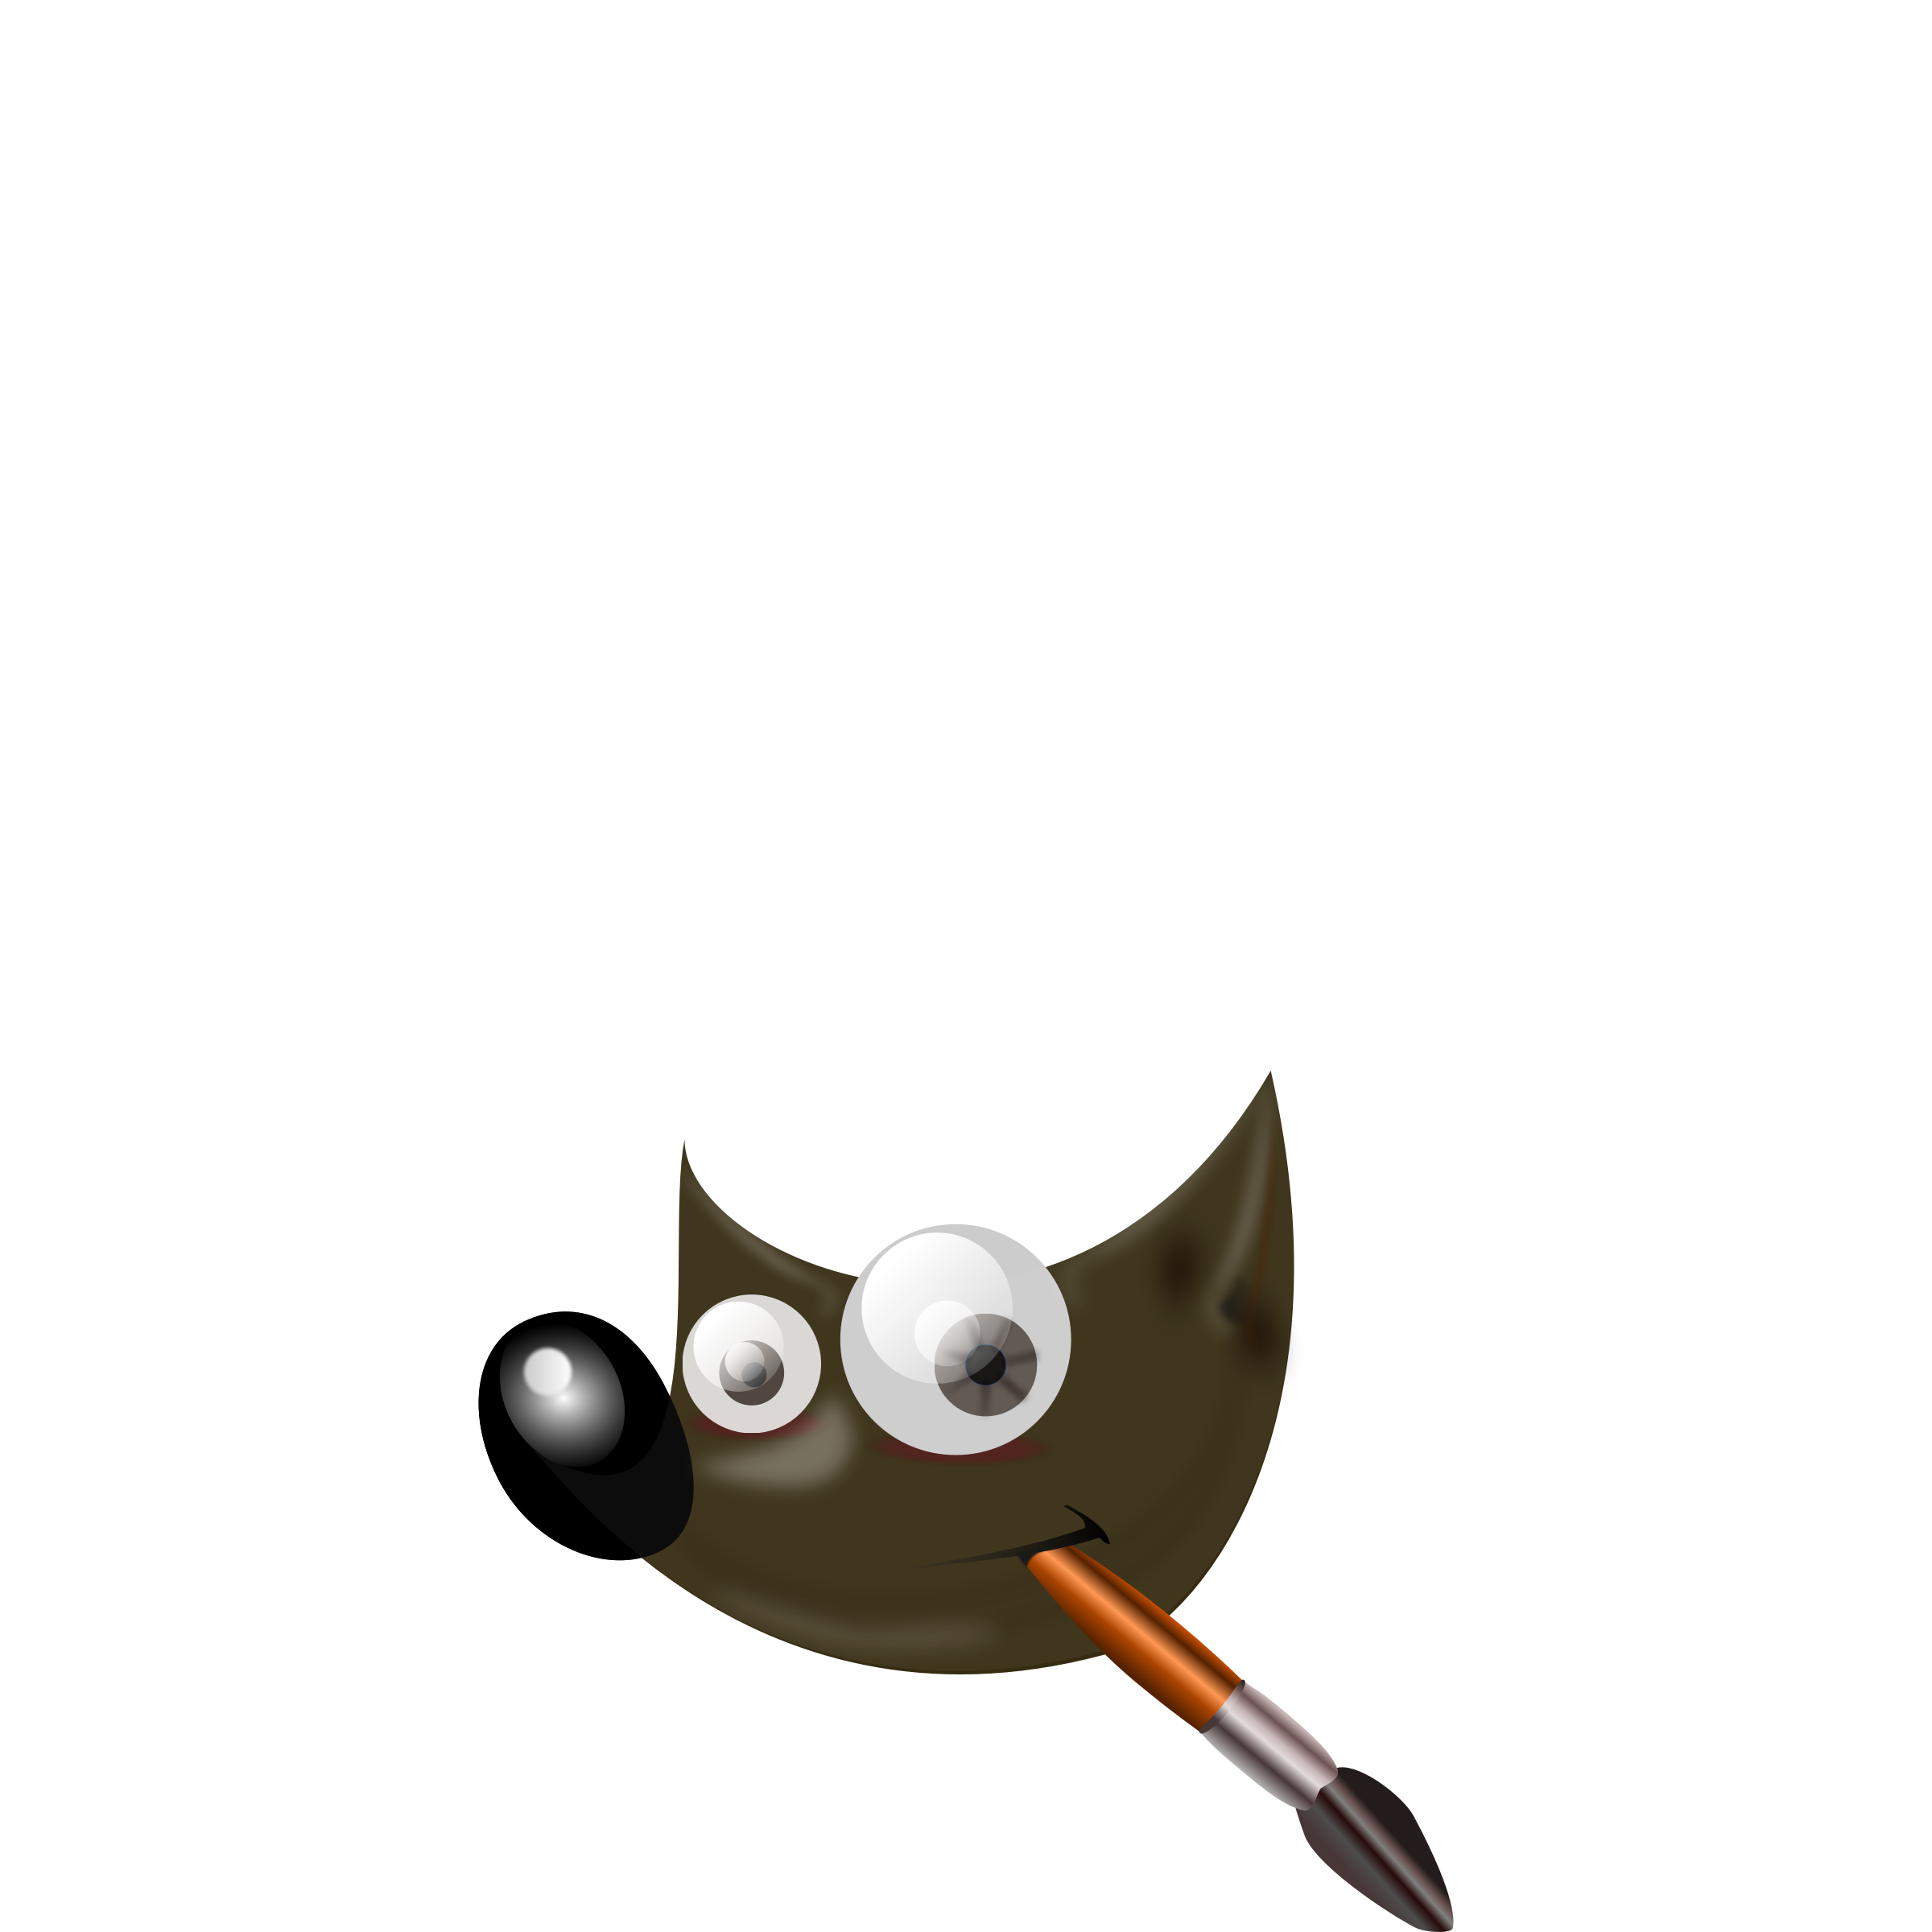 Other Clipart : Gimp wilber.